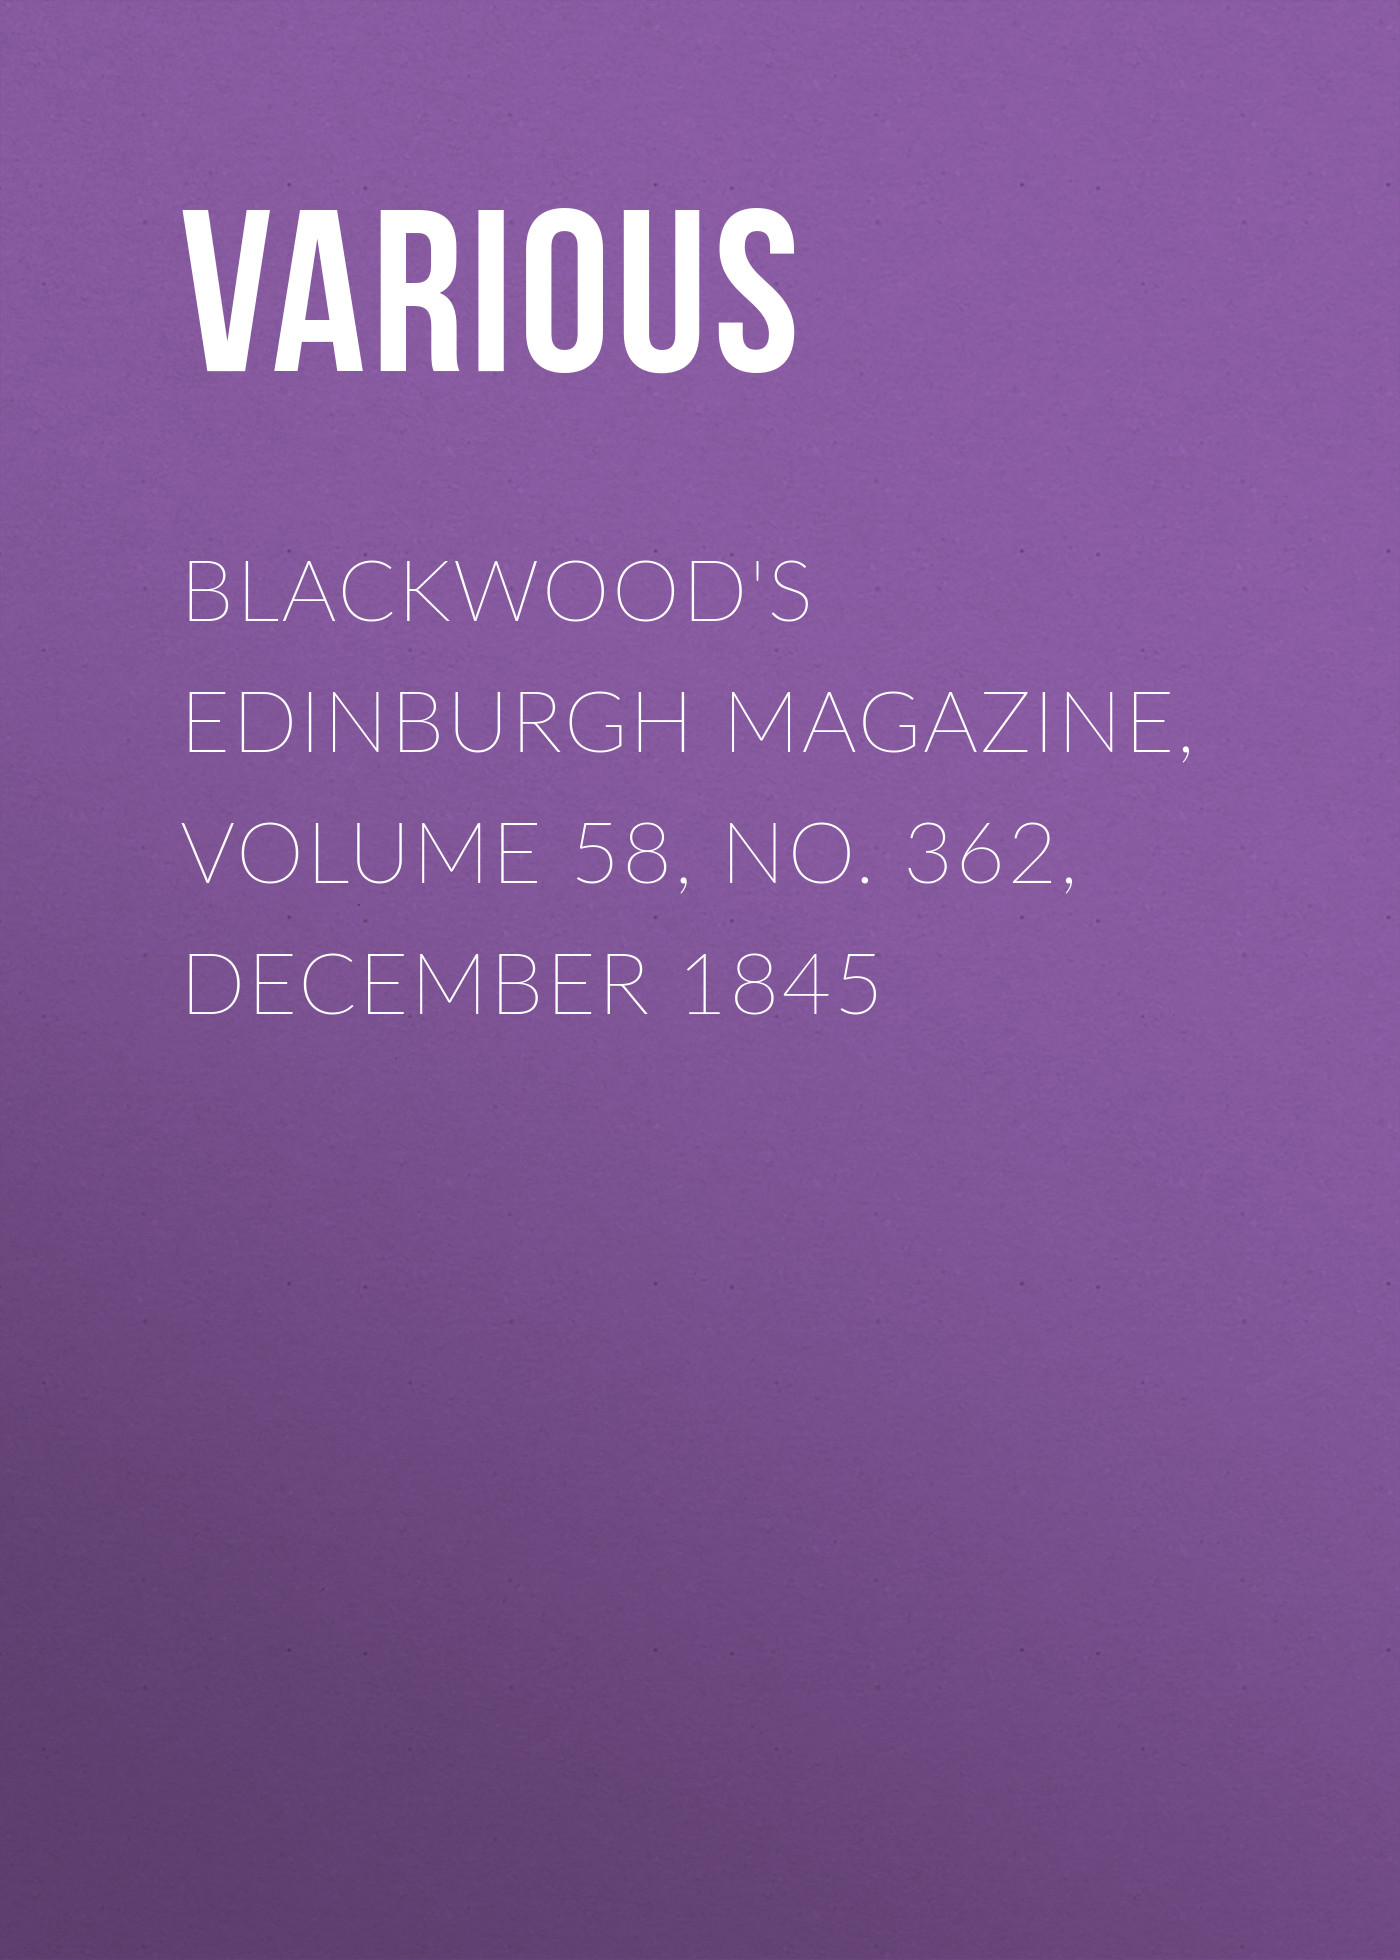 Various Blackwood's Edinburgh Magazine, Volume 58, No. 362, December 1845